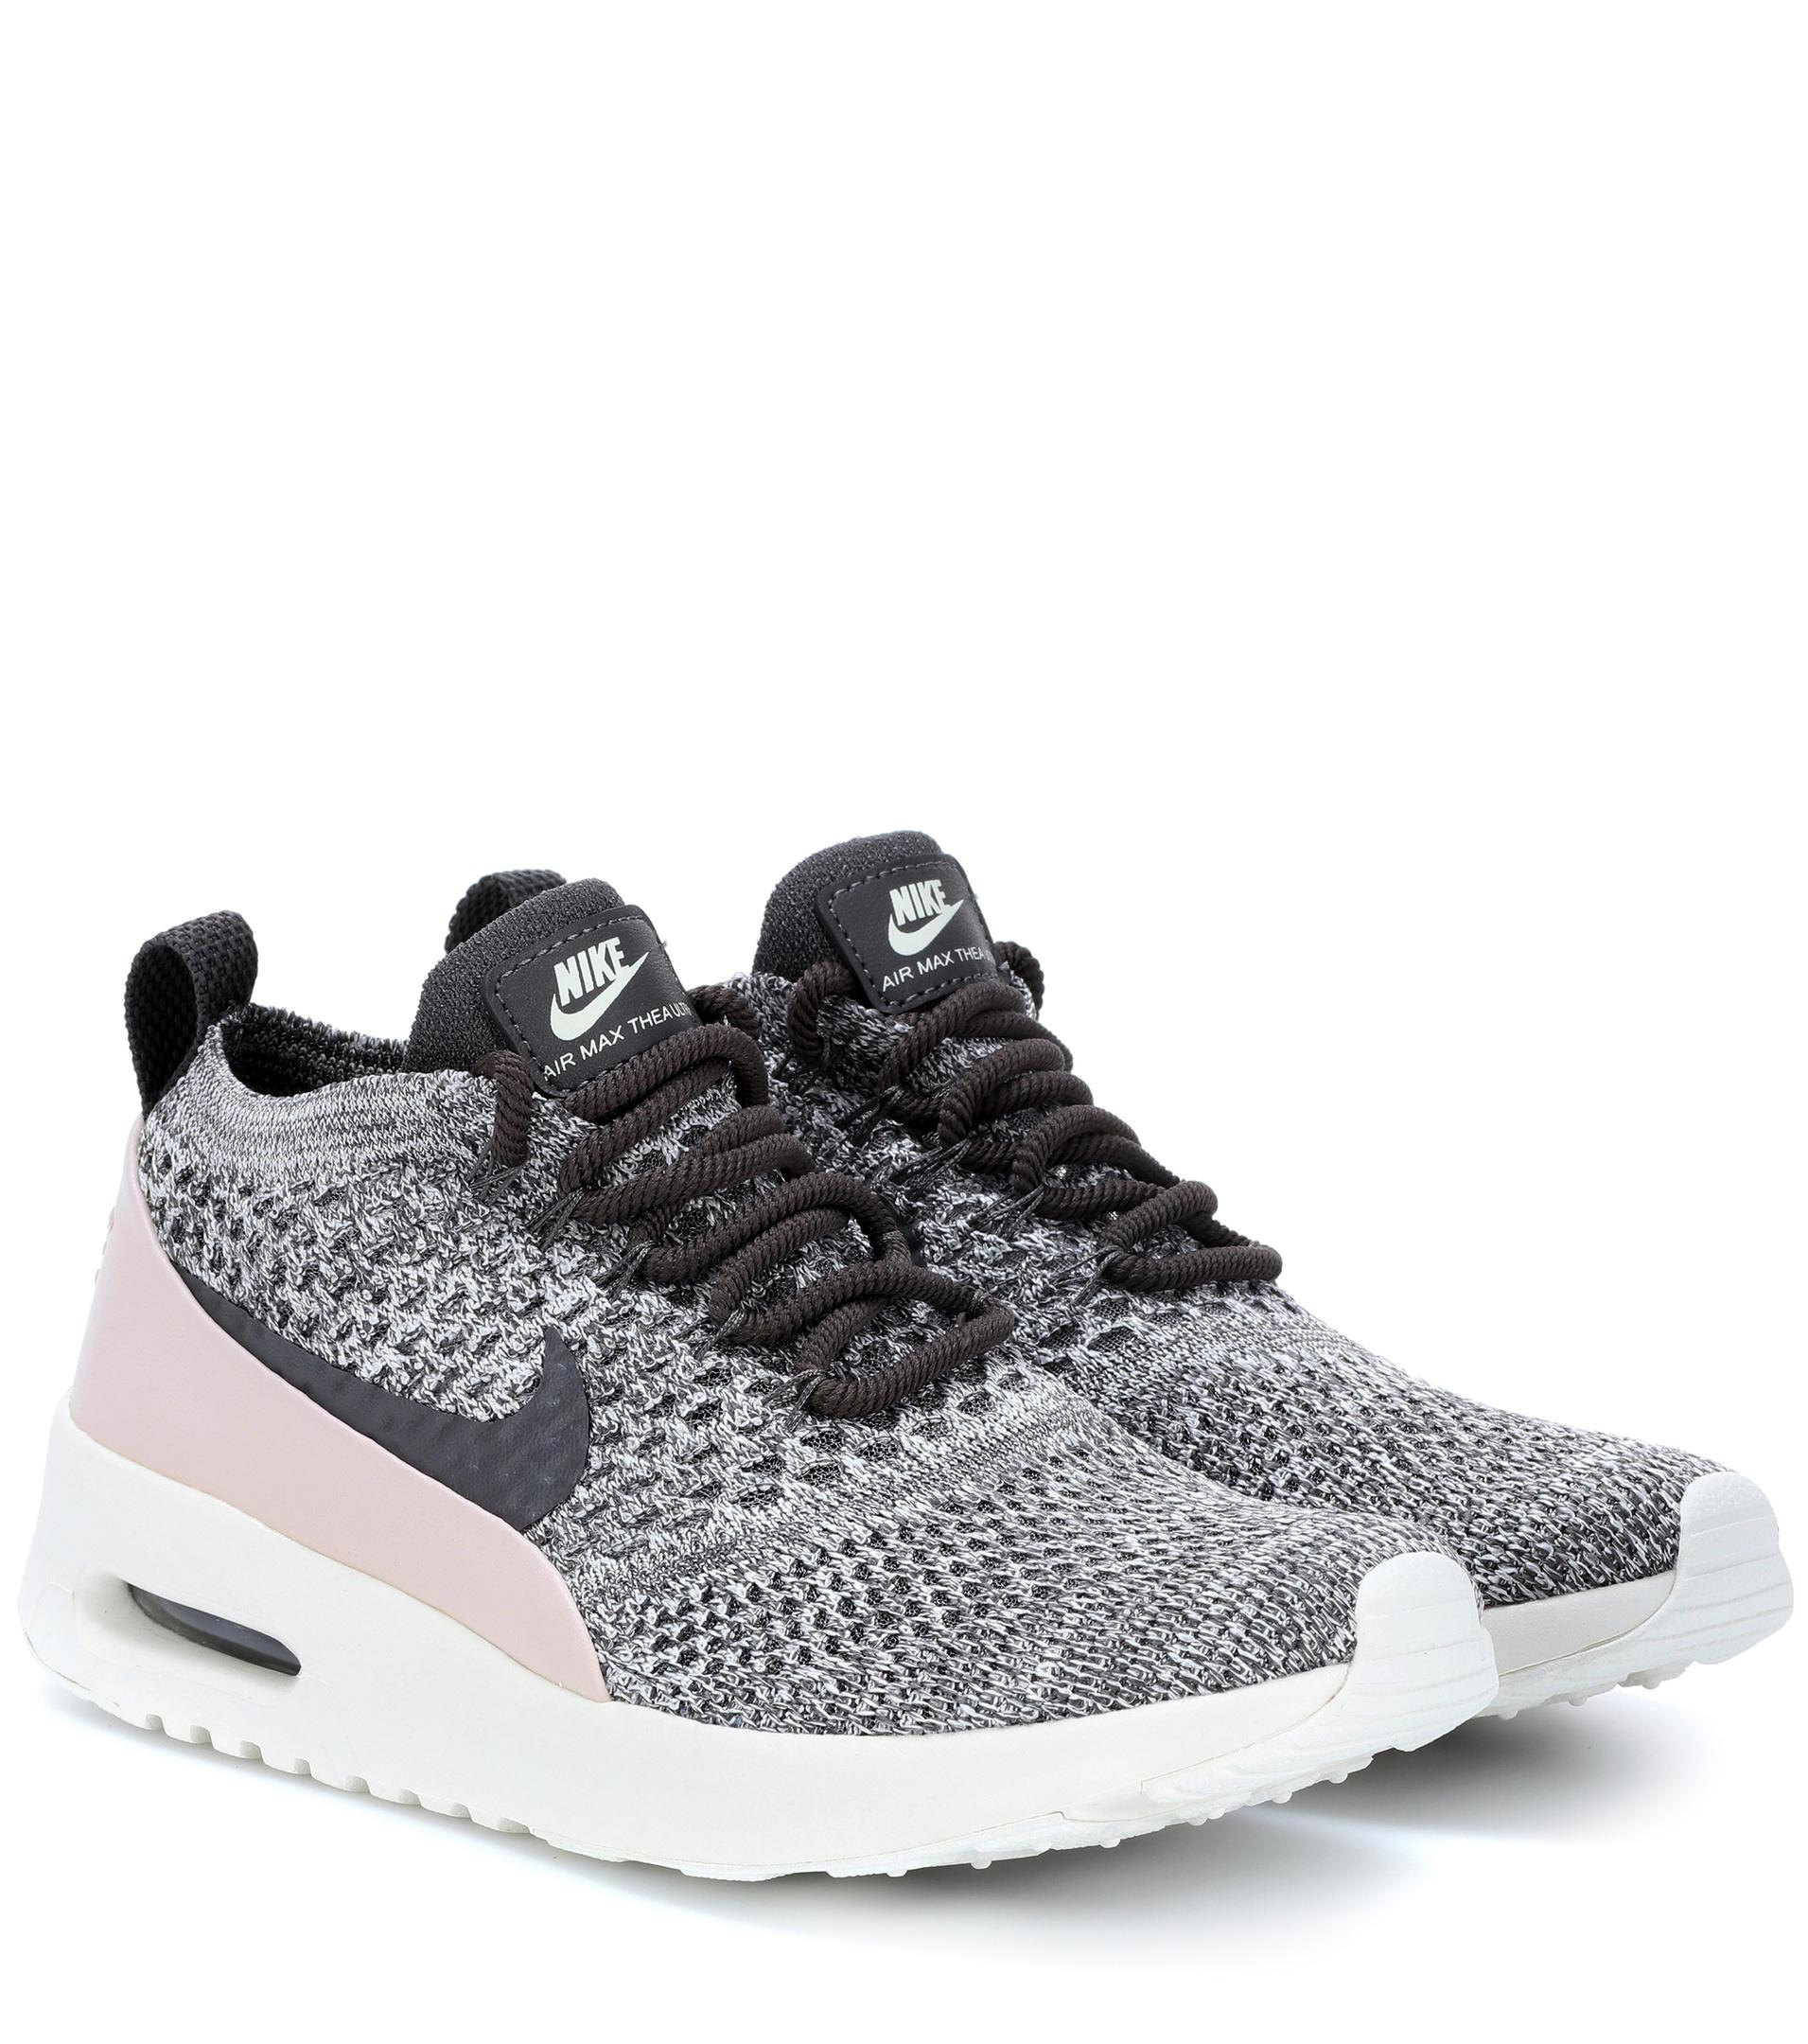 nike que max thea ultra flyknit